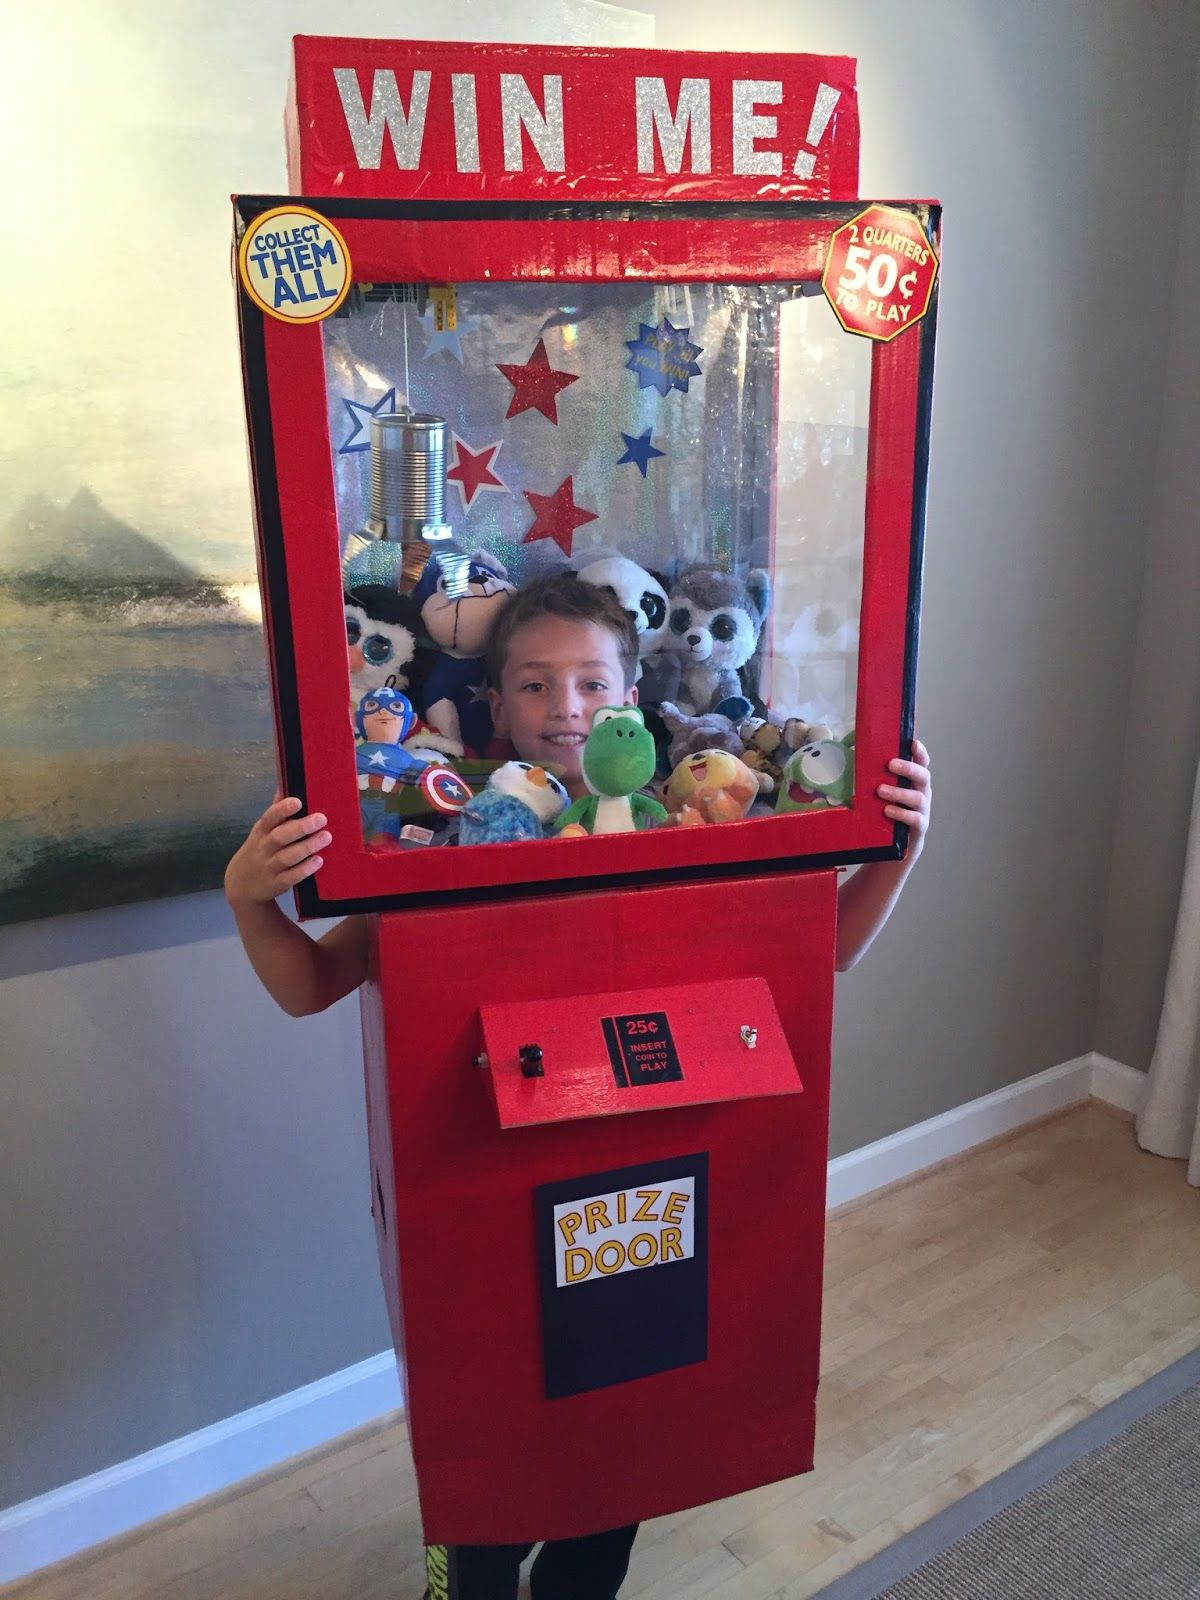 Cool Machines To Build Howto Build A Working Claw Machine Halloween Costume